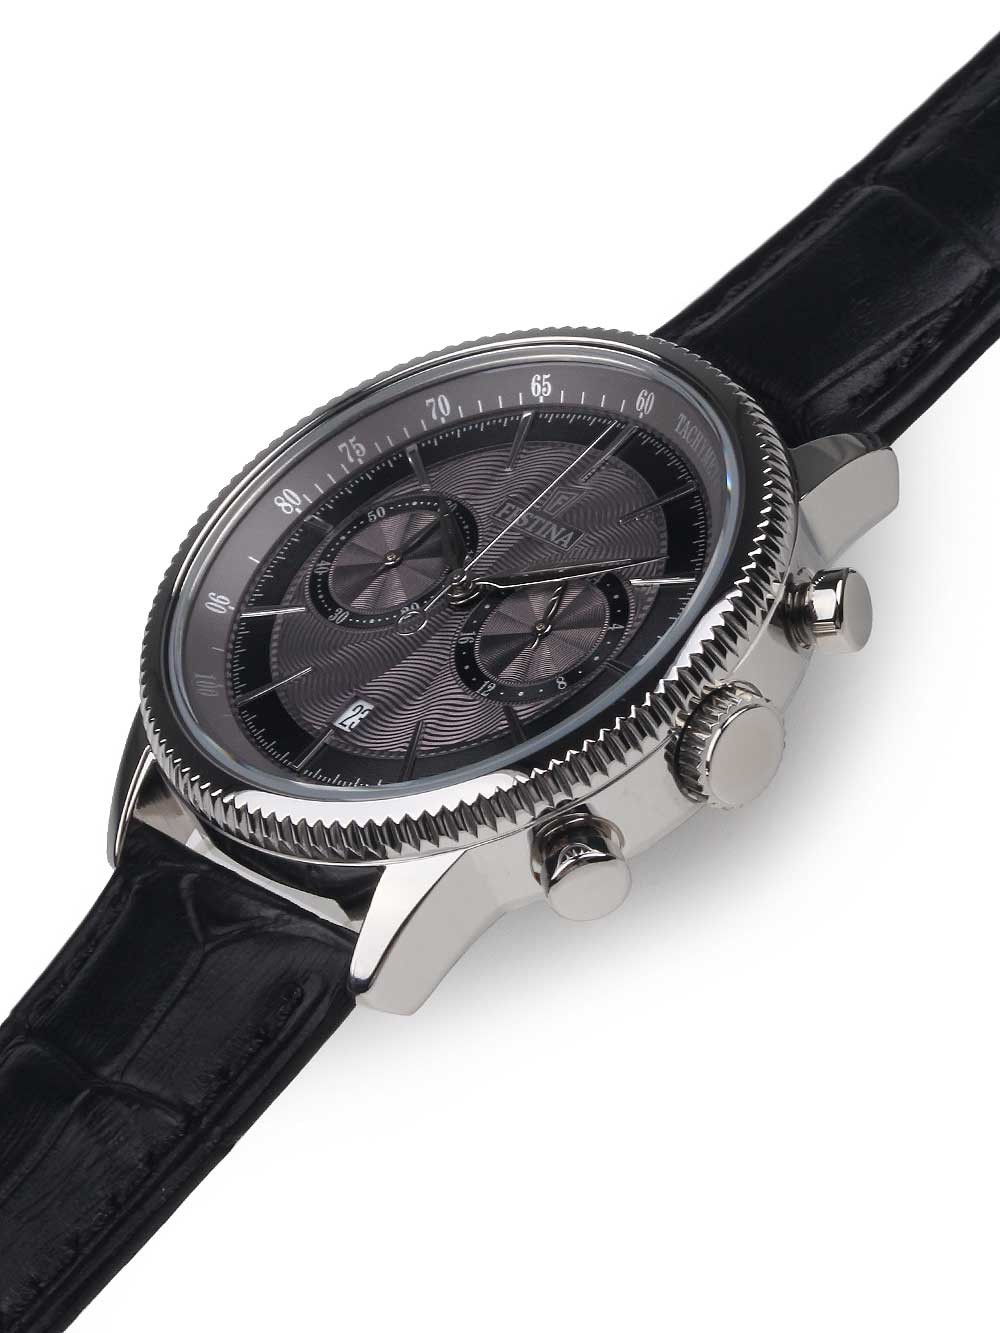 watches chrono12 festina f16893 5 chronograph herren 41mm 5atm. Black Bedroom Furniture Sets. Home Design Ideas